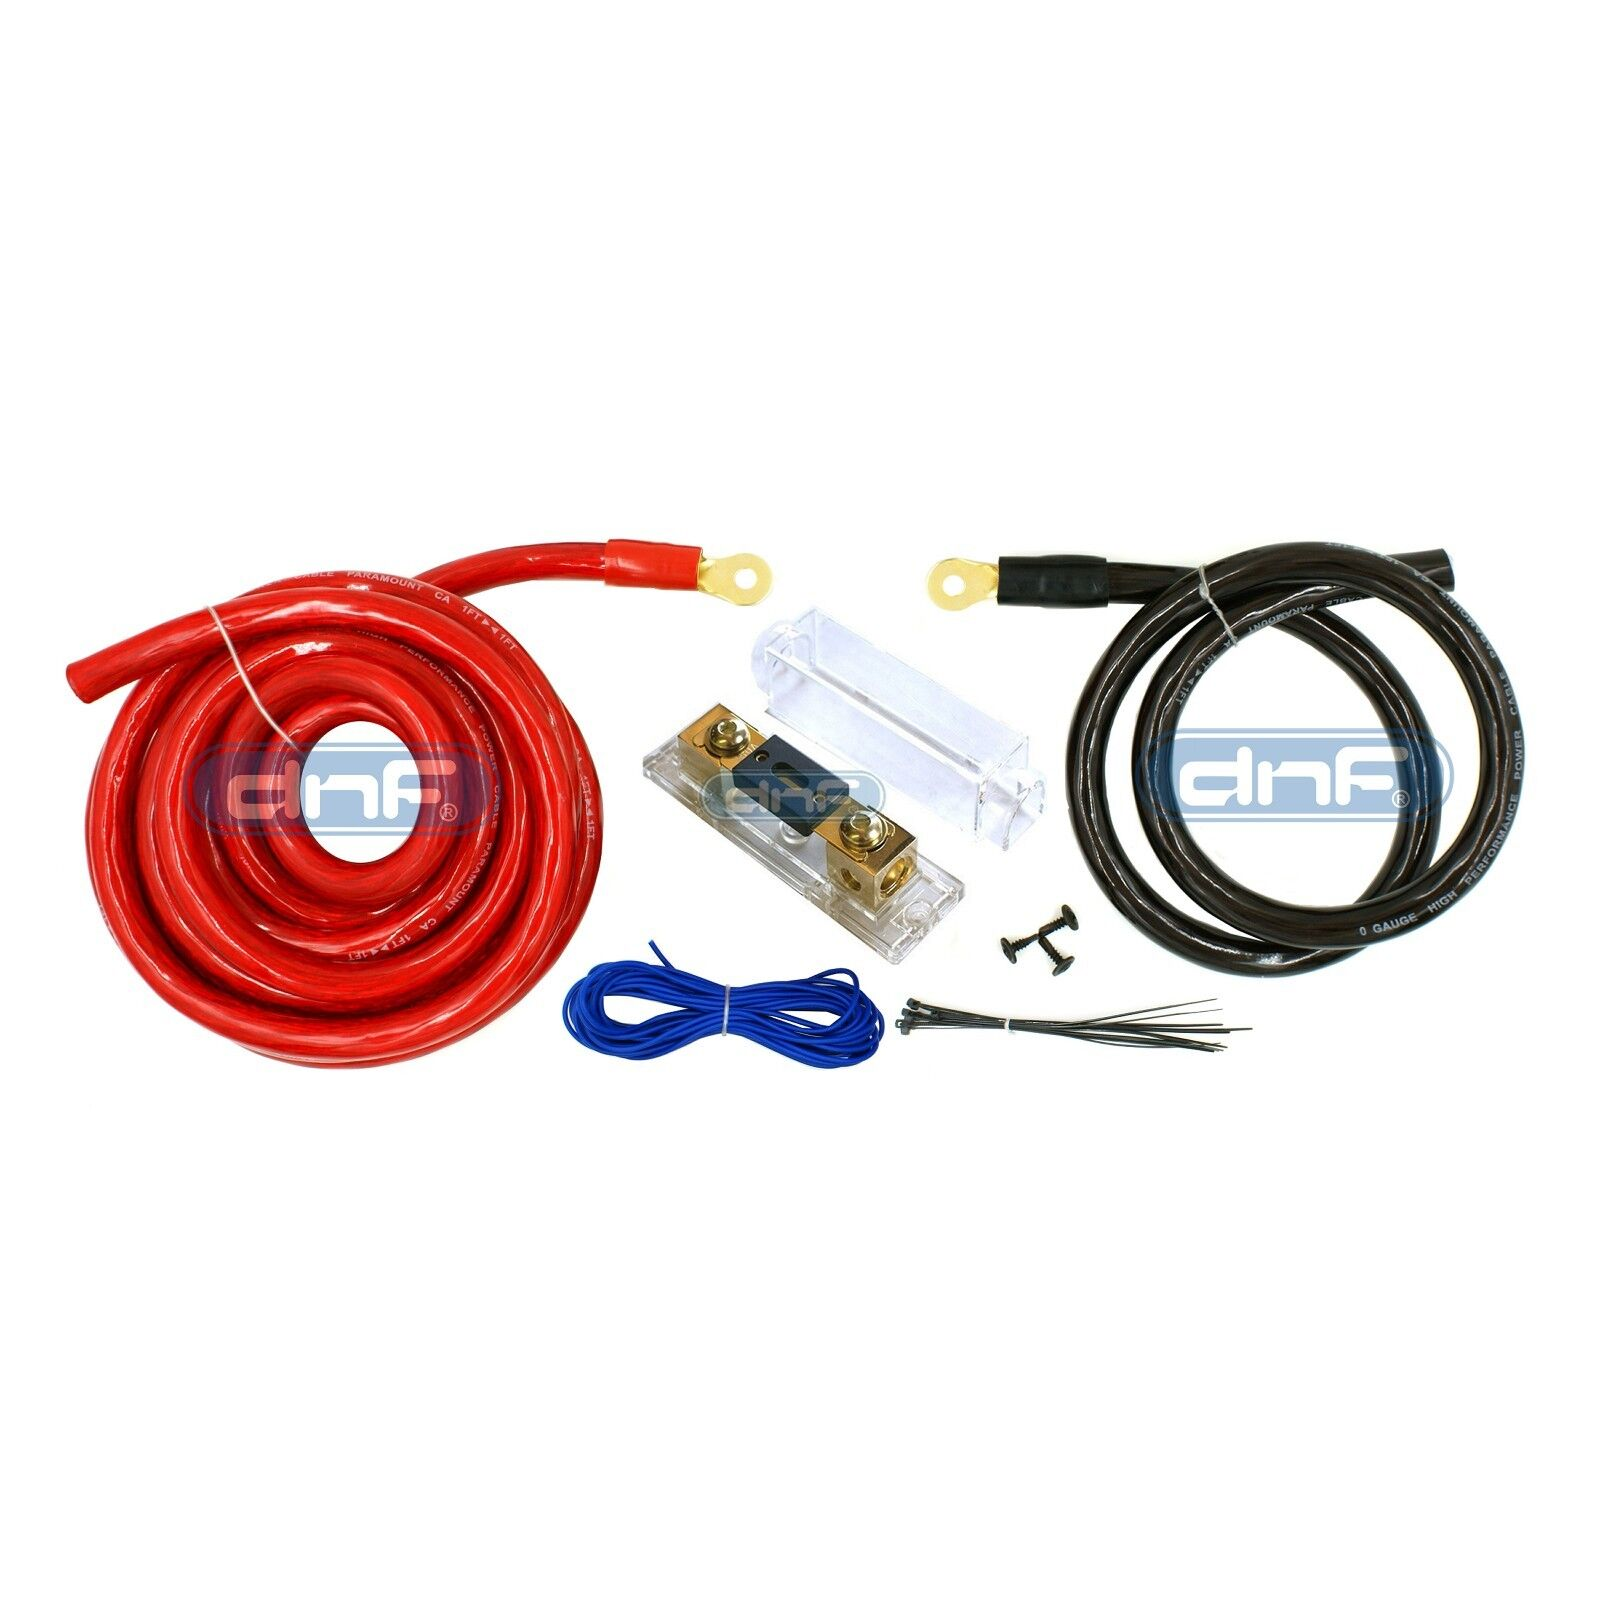 Amp Wiring Kit 0 Gauge Solutions Audio Re Connectseries Amplifier 4gauge 2channel 5000w Compare S At Nextag